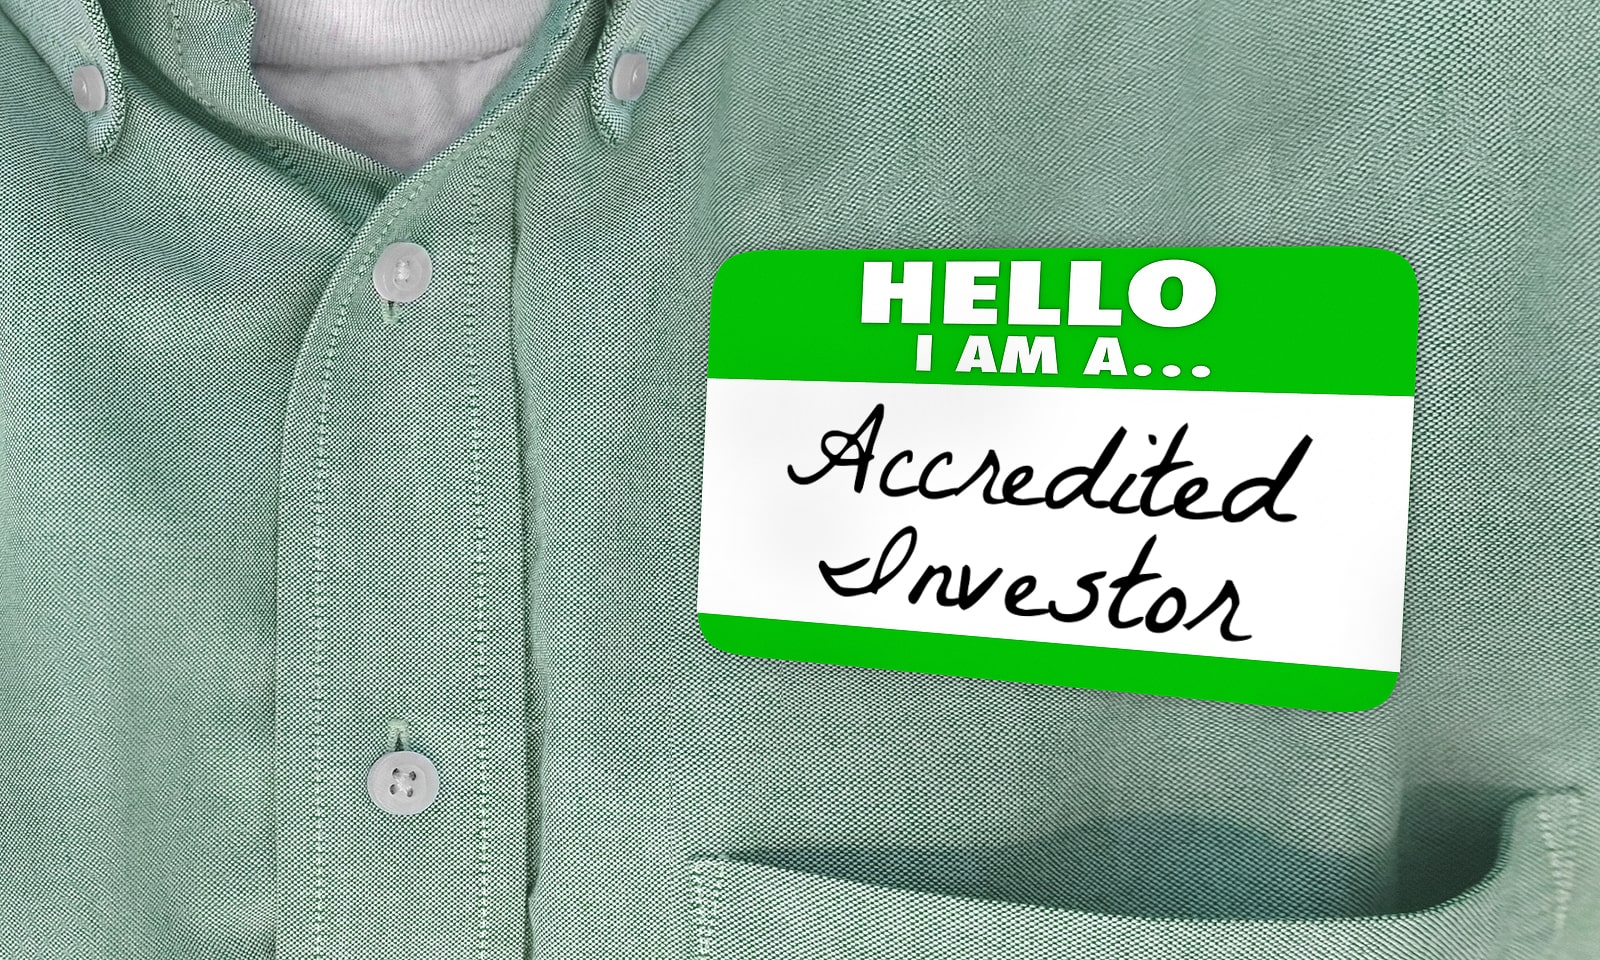 Accredited Investors, Private Placements, and the Right Software